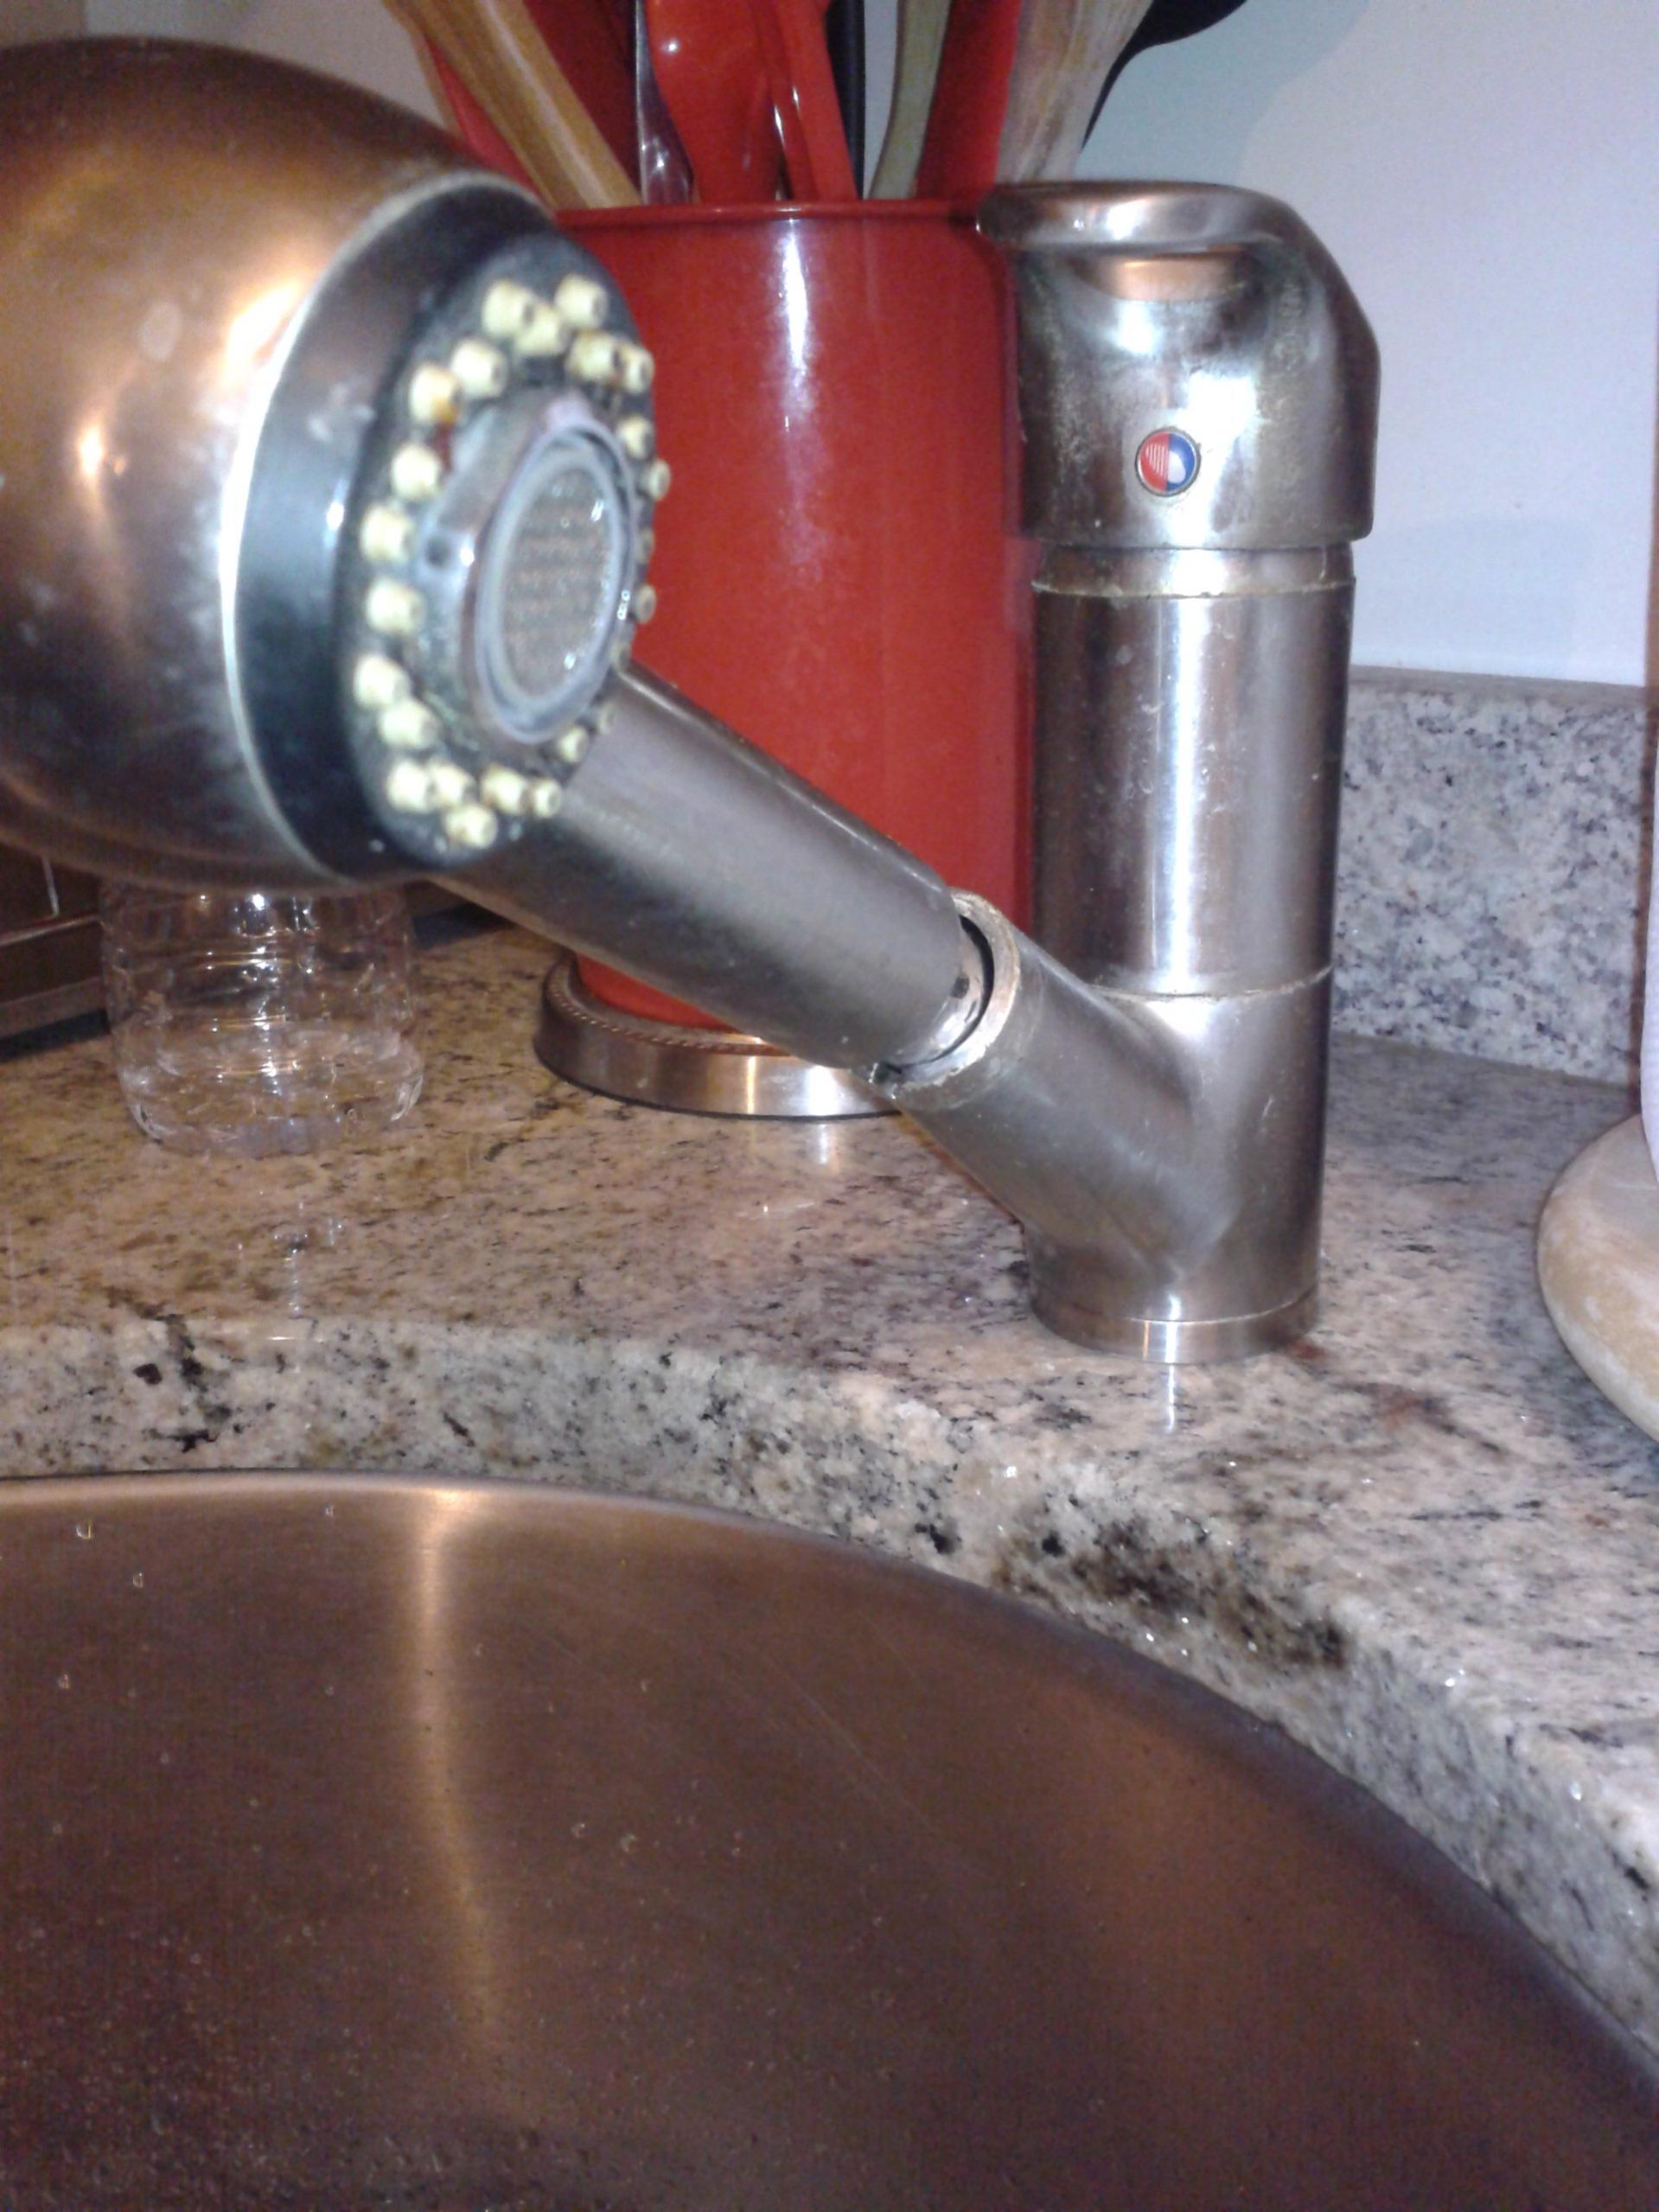 How To Identify Brand Of Kitchen Sink Faucet